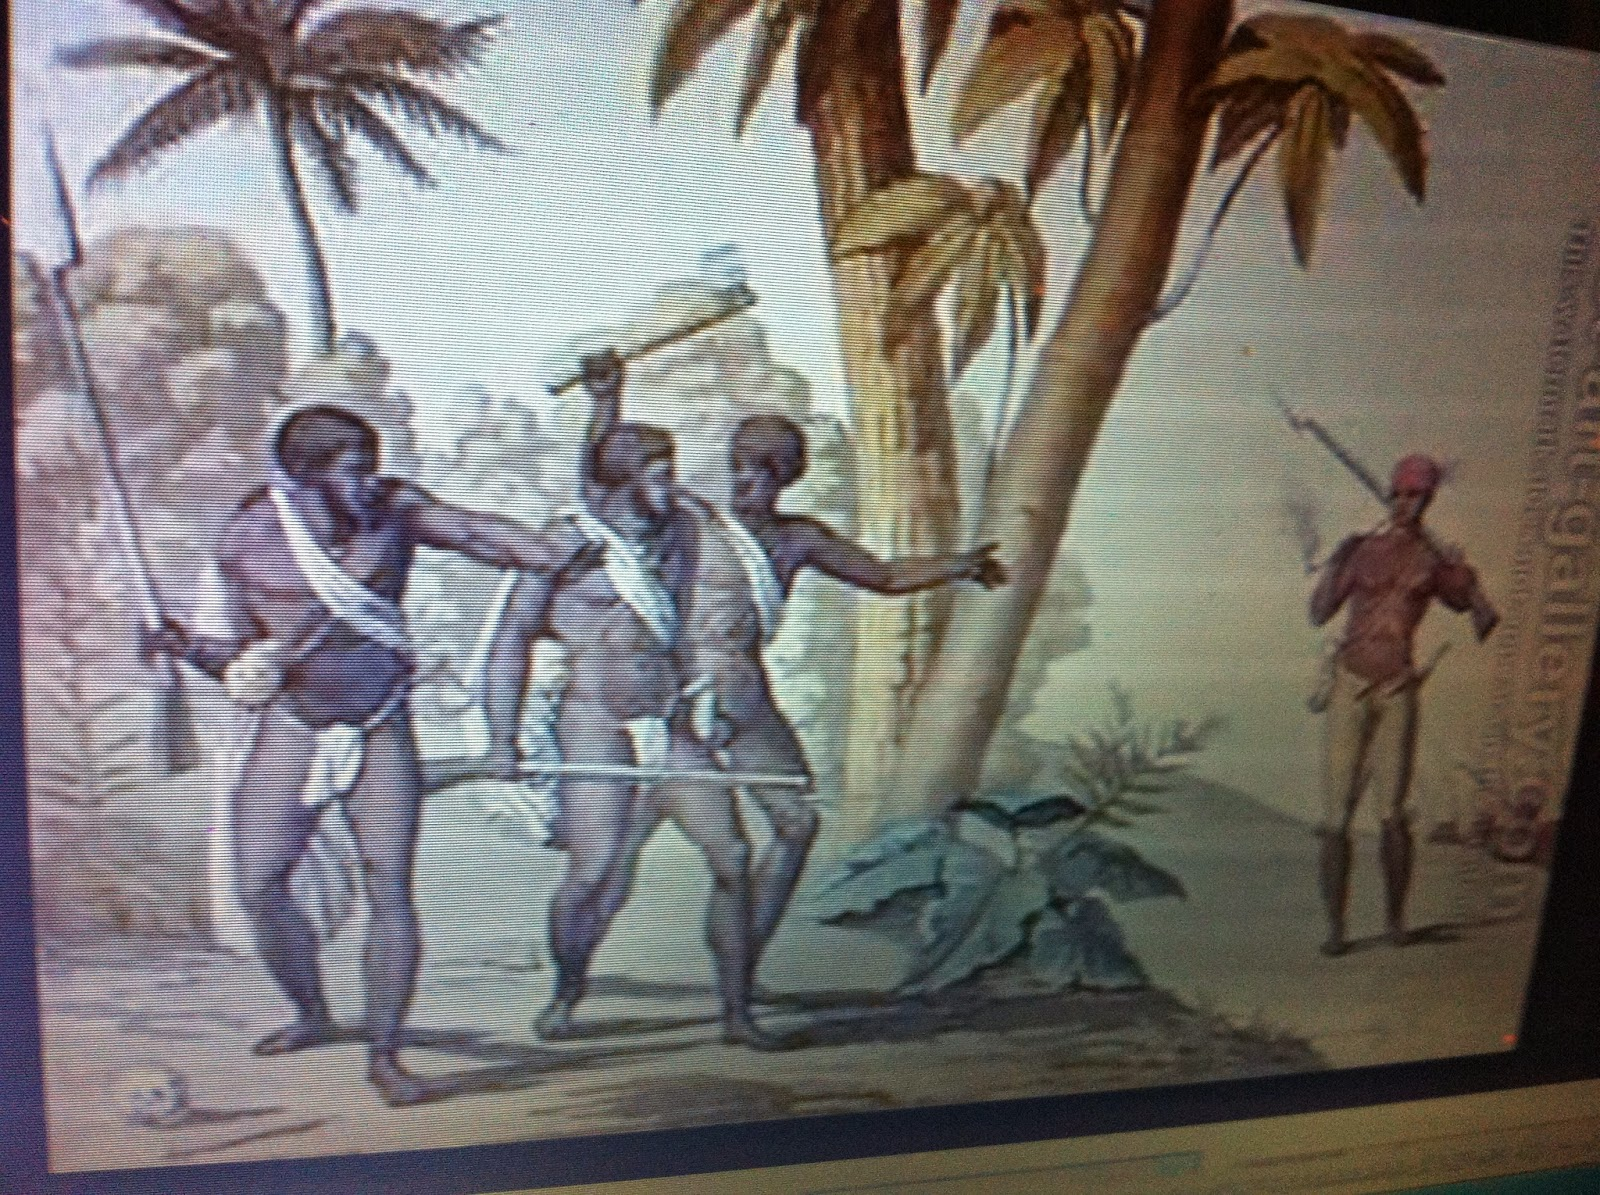 slave rebellion in america Under slave rebellions or slave revolts, many interesting articles will appear, but not a single one about the largest slave rebellion in american history the omission from mainstream history of both the black seminoles and the slave rebellion that they led is a curious phenomenon.